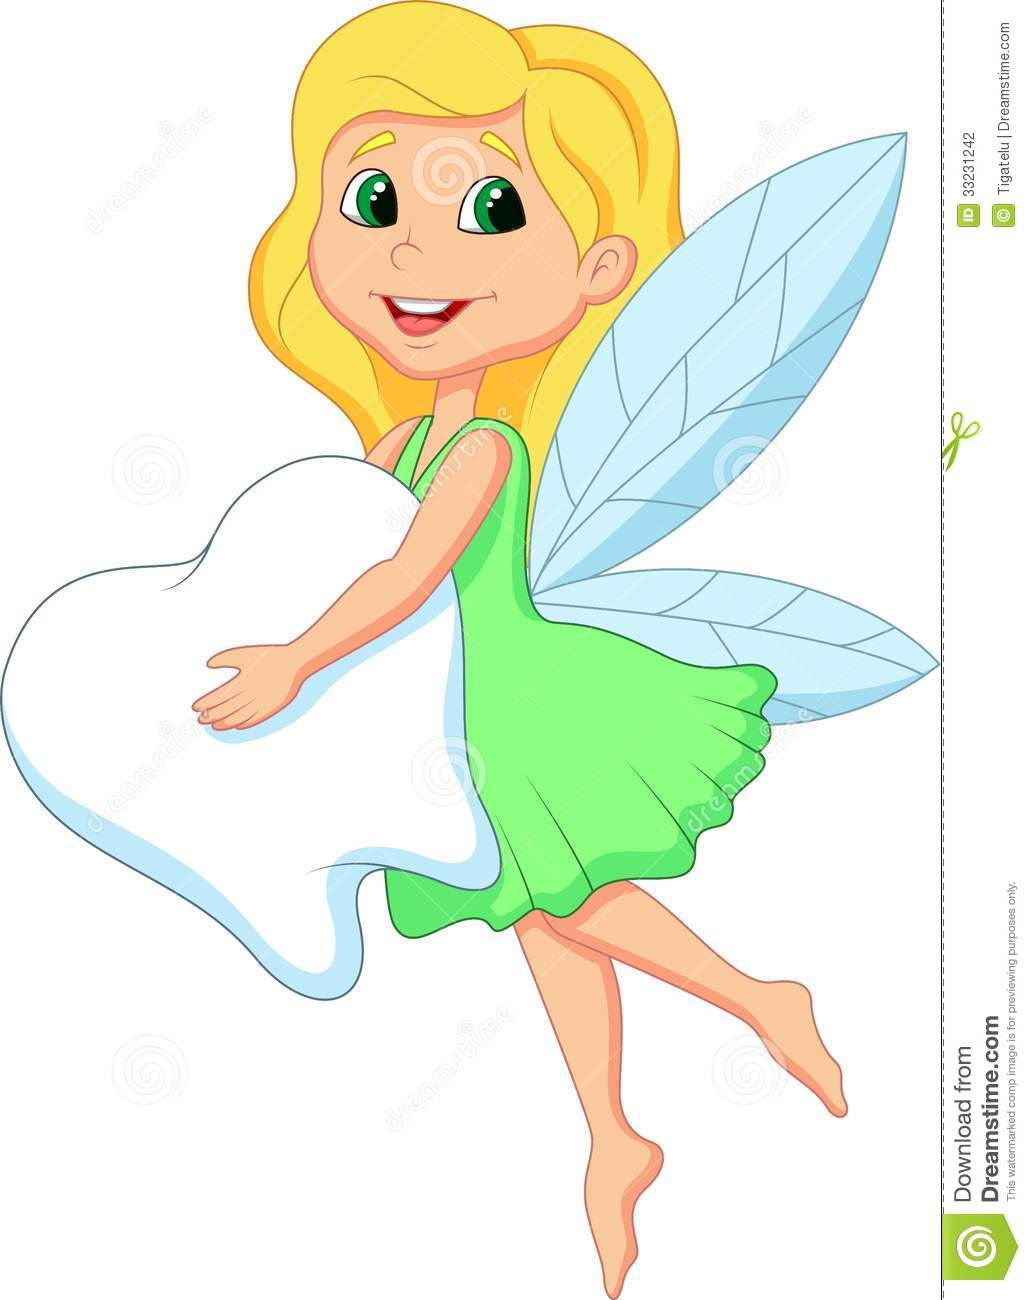 Cute Tooth Fairy flying cartoon with Tooth